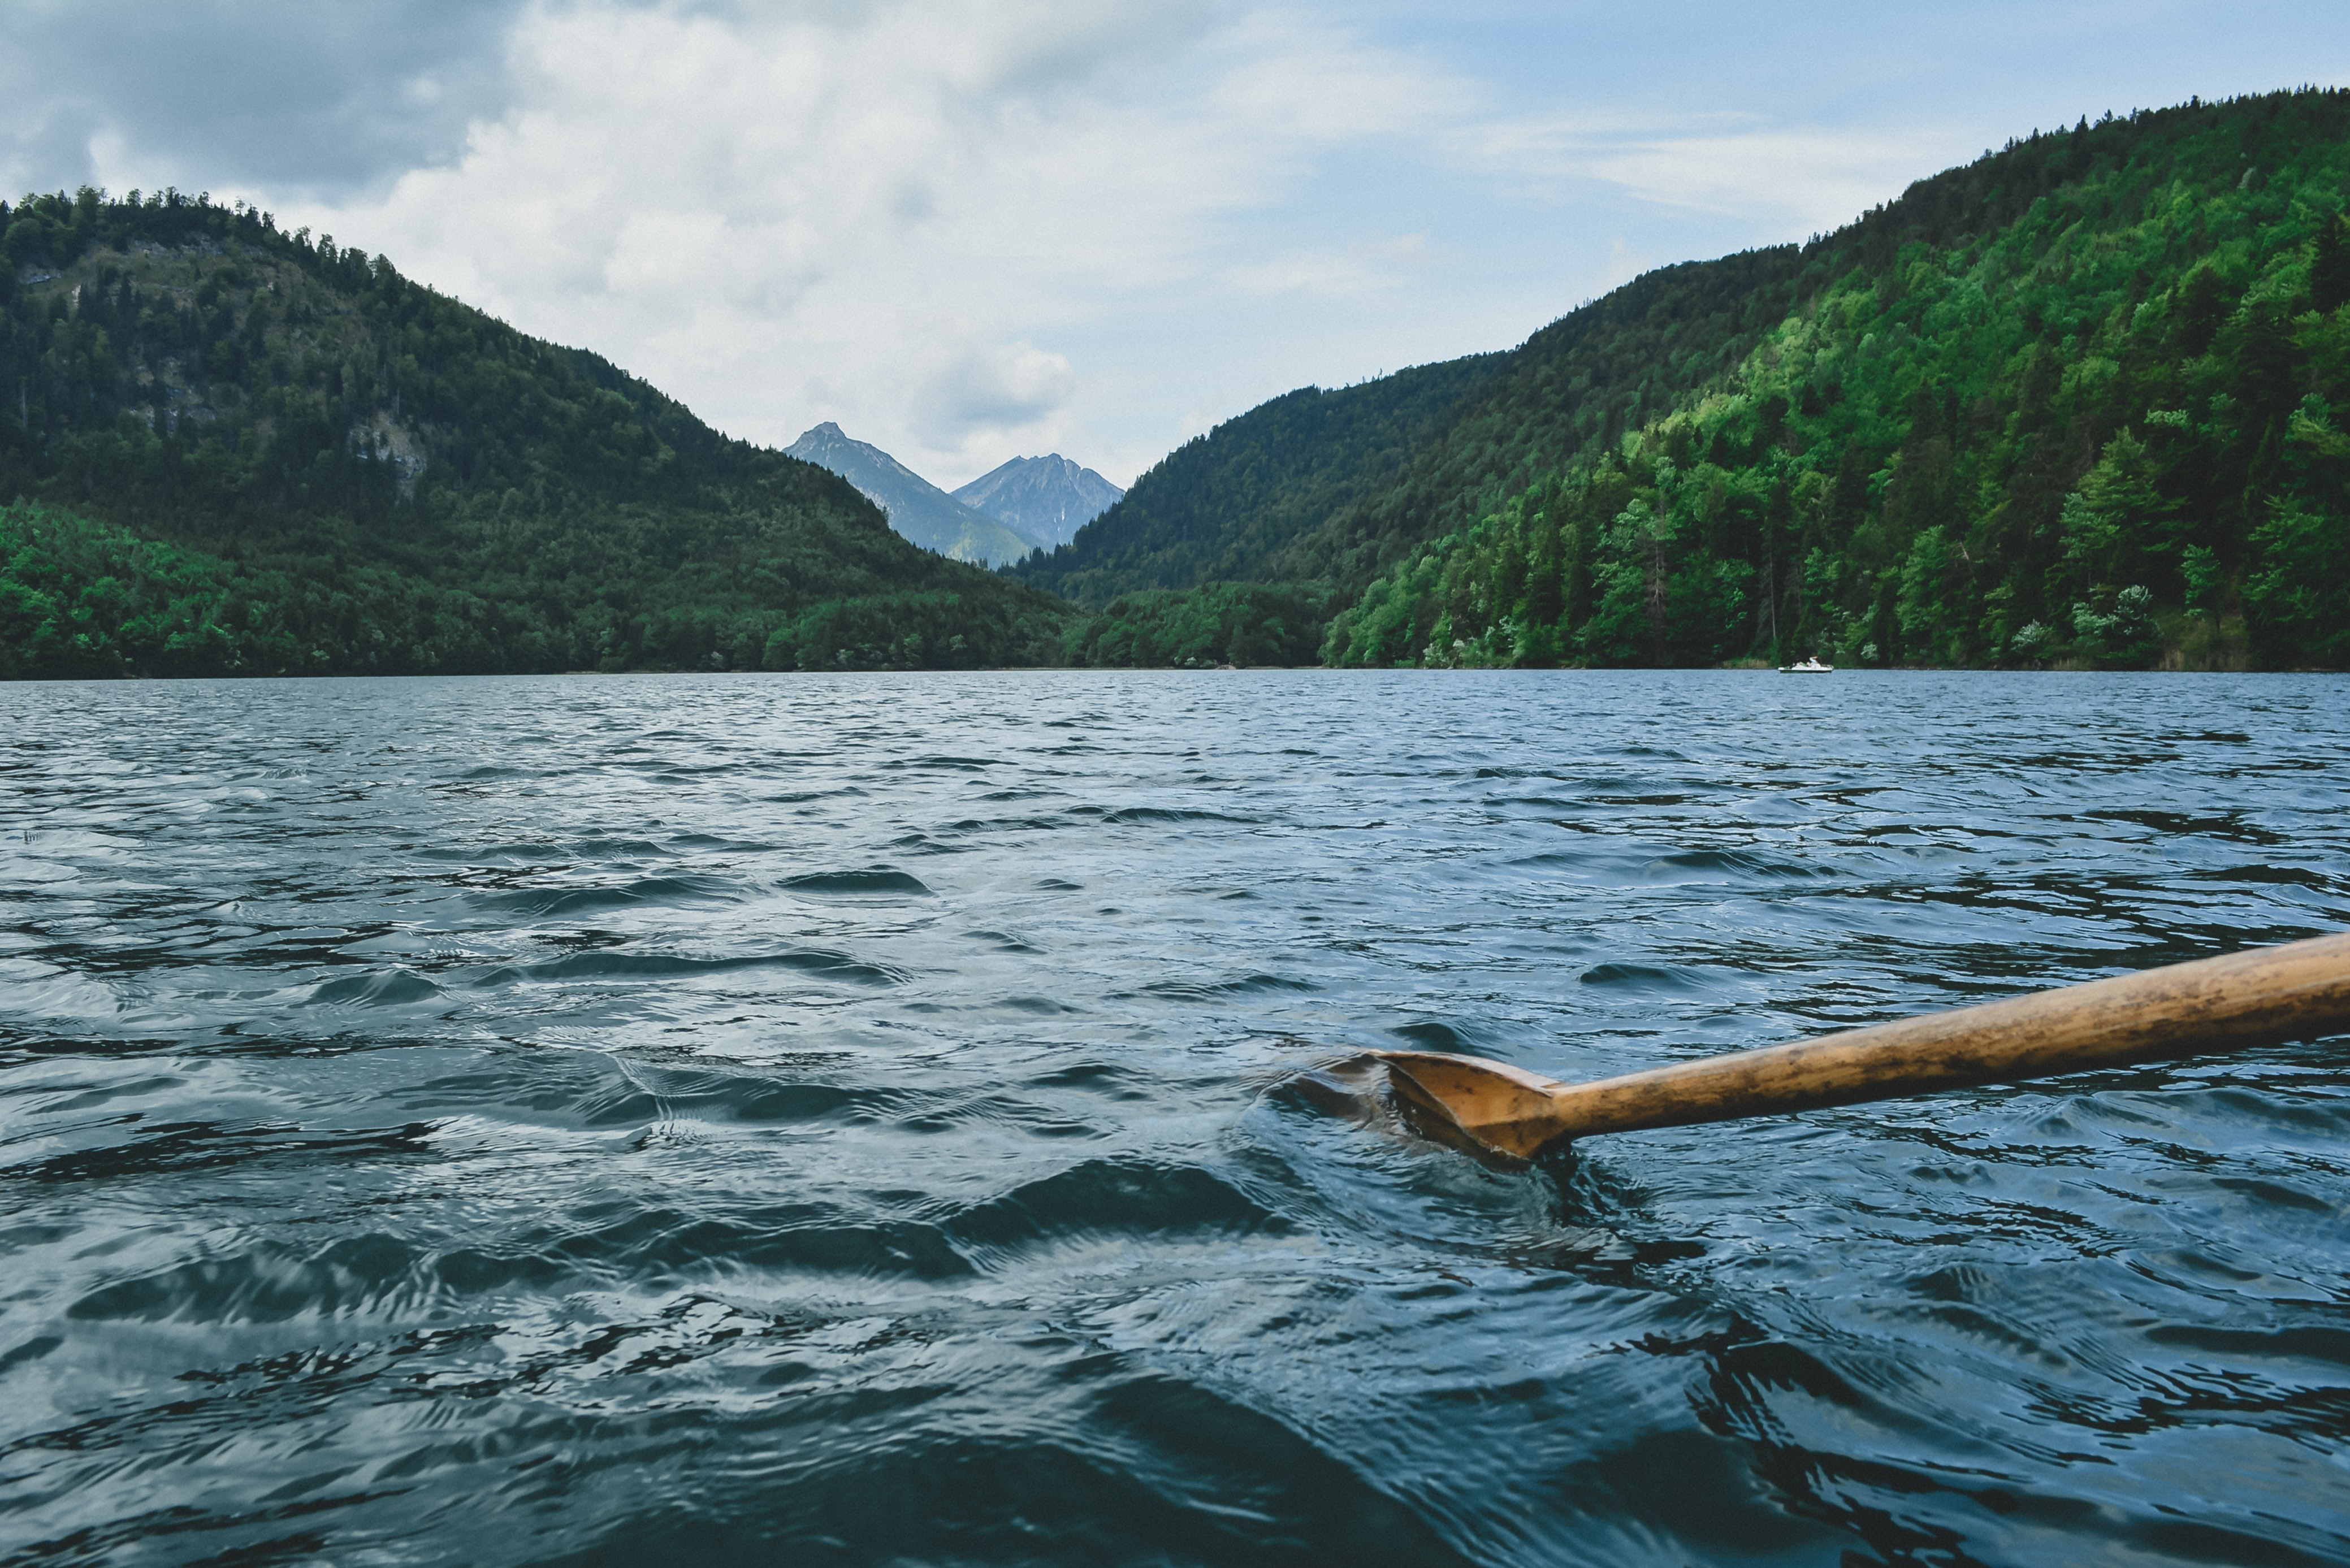 A boat view of a wooden oar in water on a choppy lake in the mountains